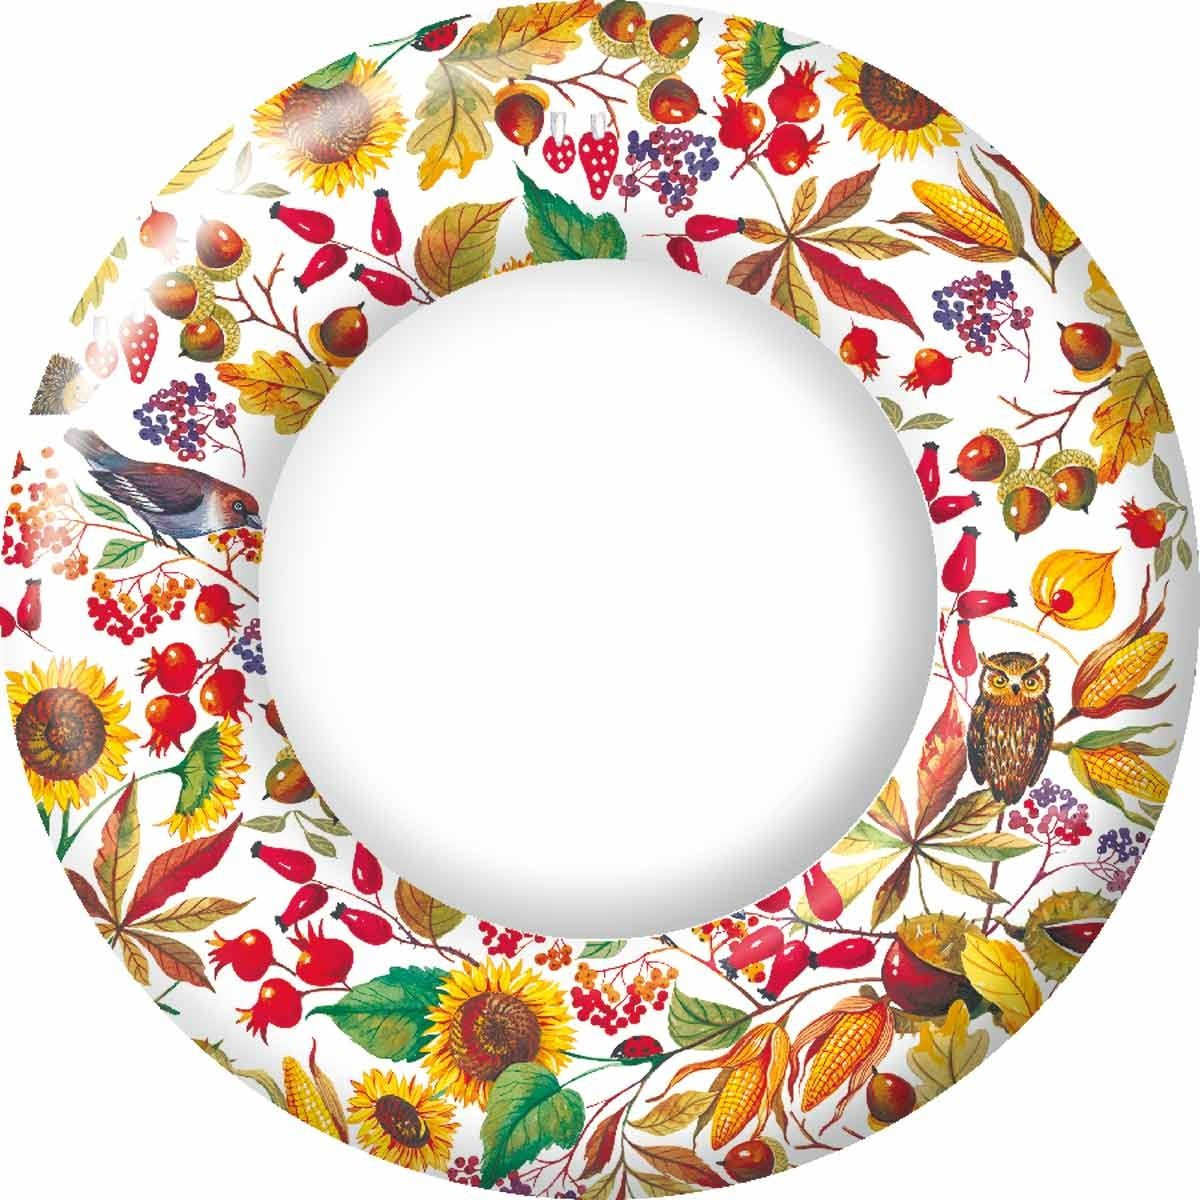 Ideal Home Range 8 Count Paper Plates, 10.5-Inch, Autunno Bellino